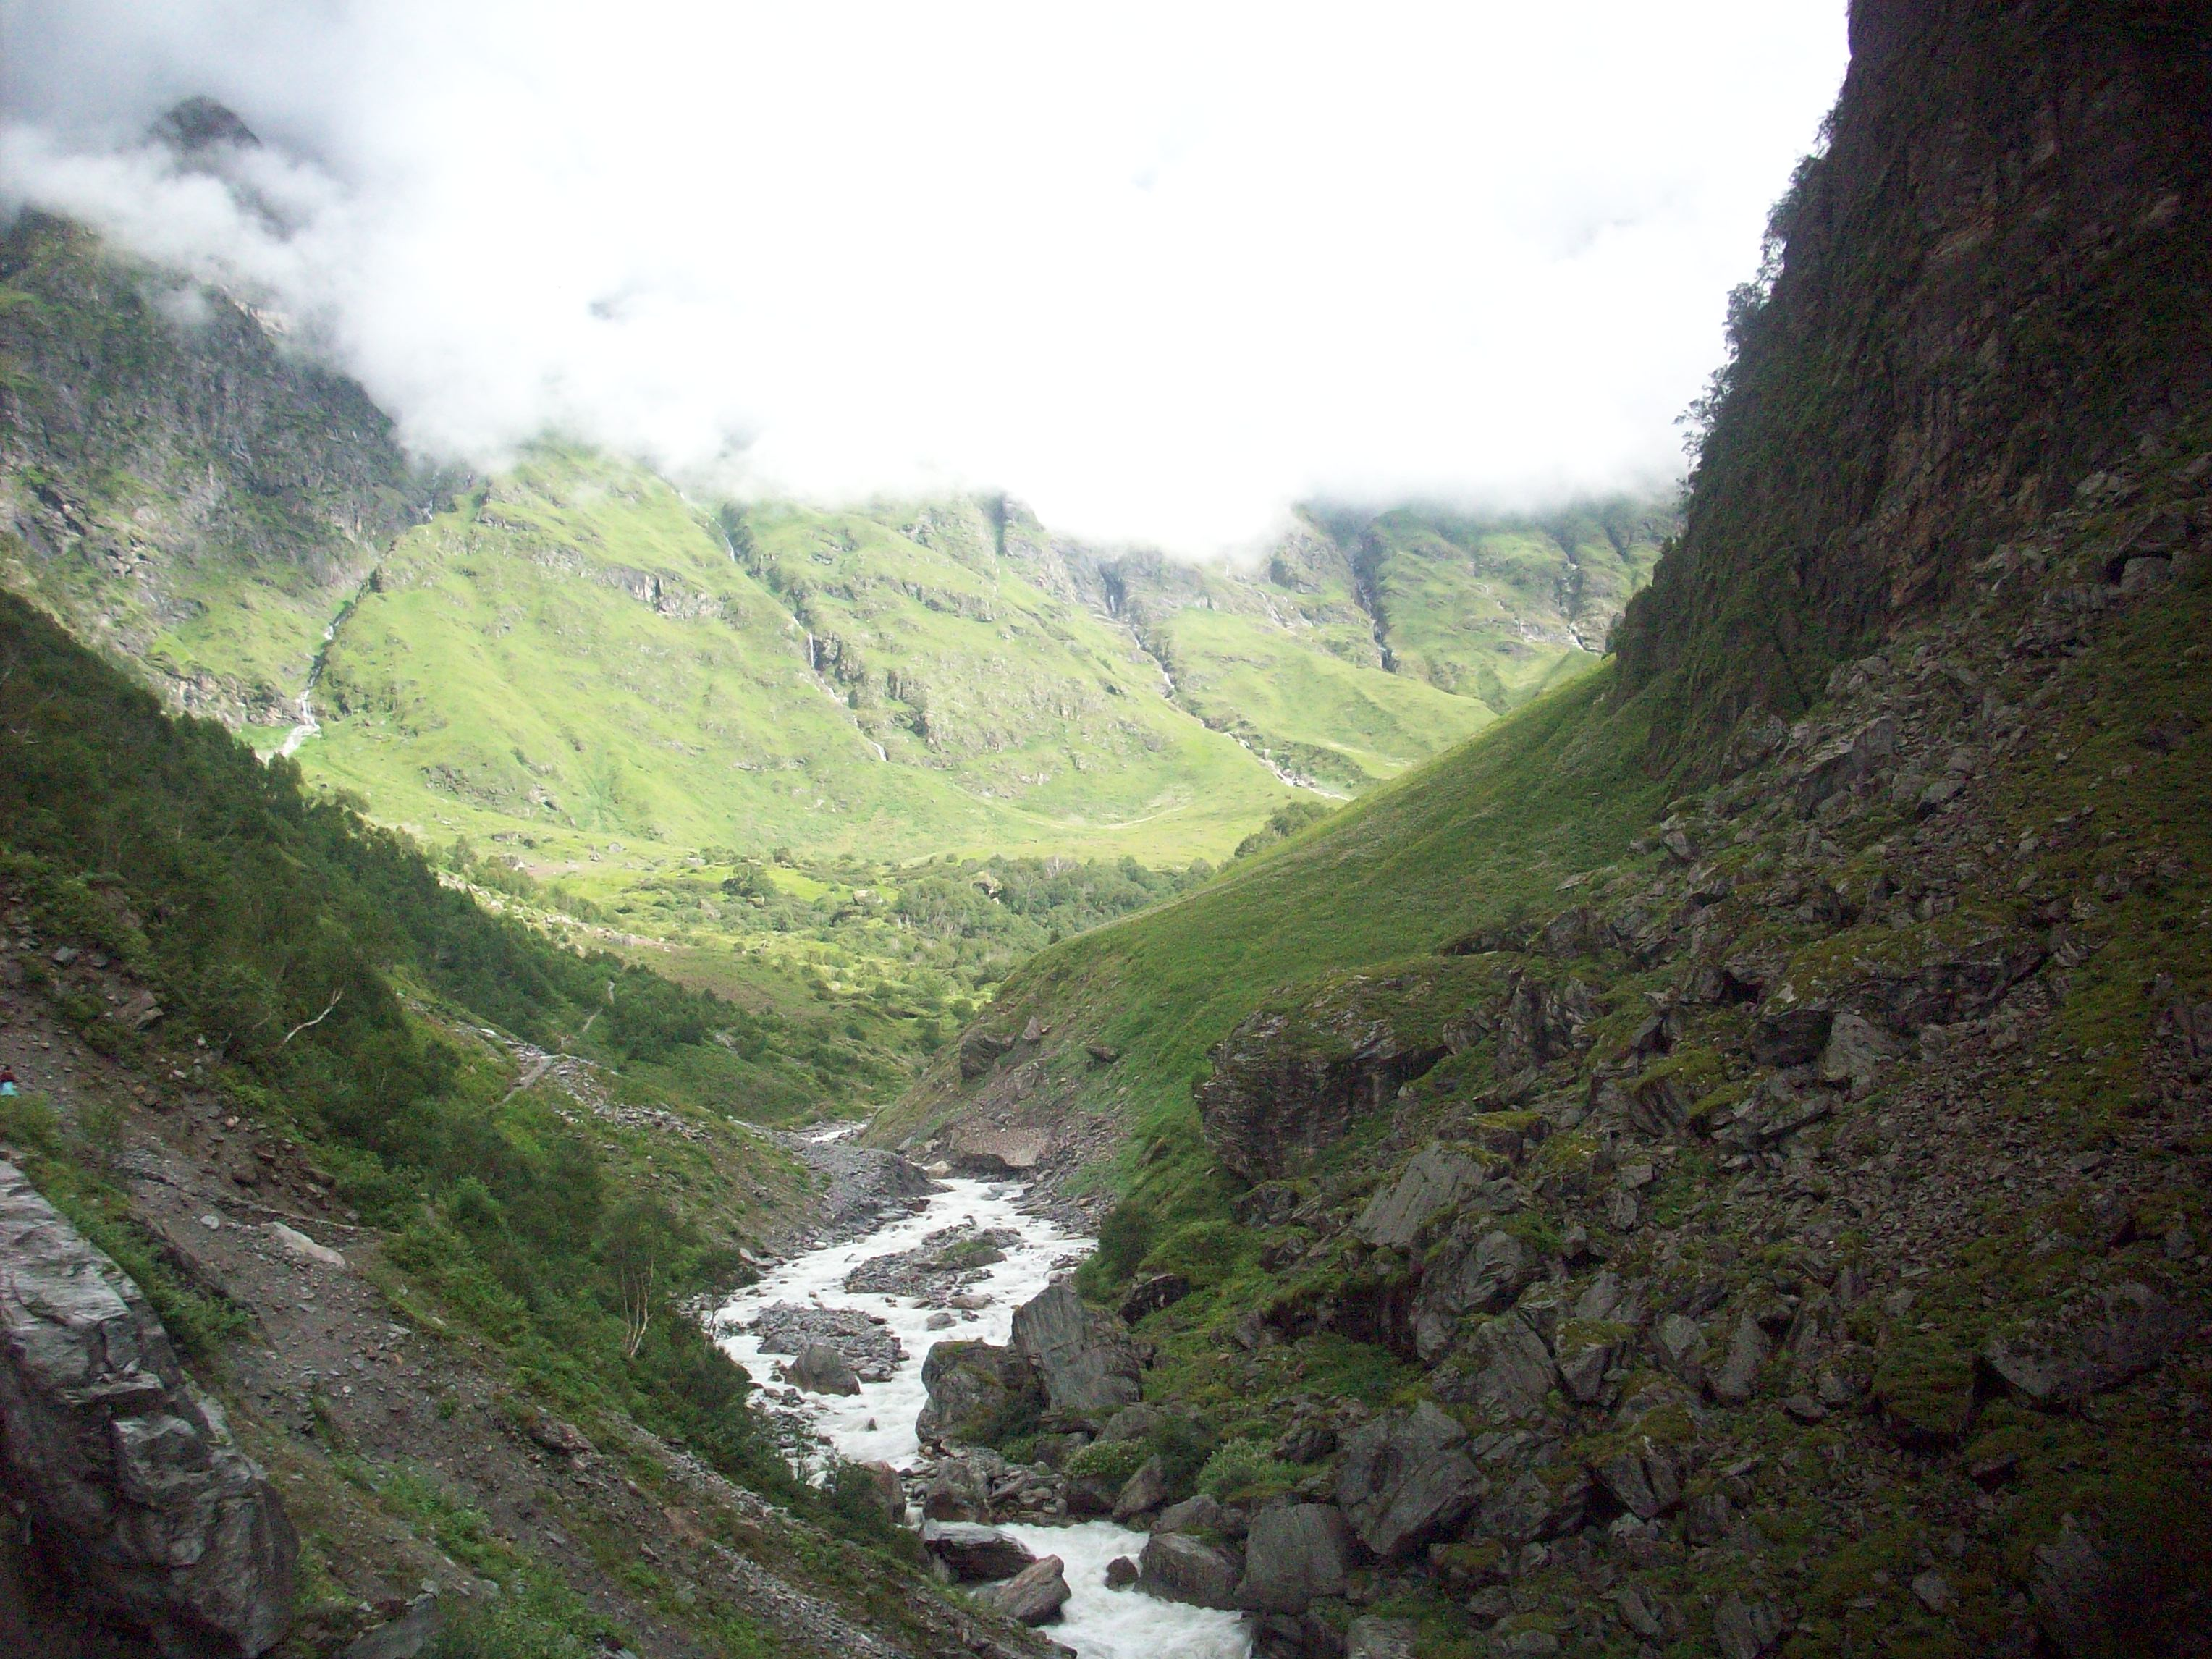 Nanda Devi and Valley of Flowers National Parks